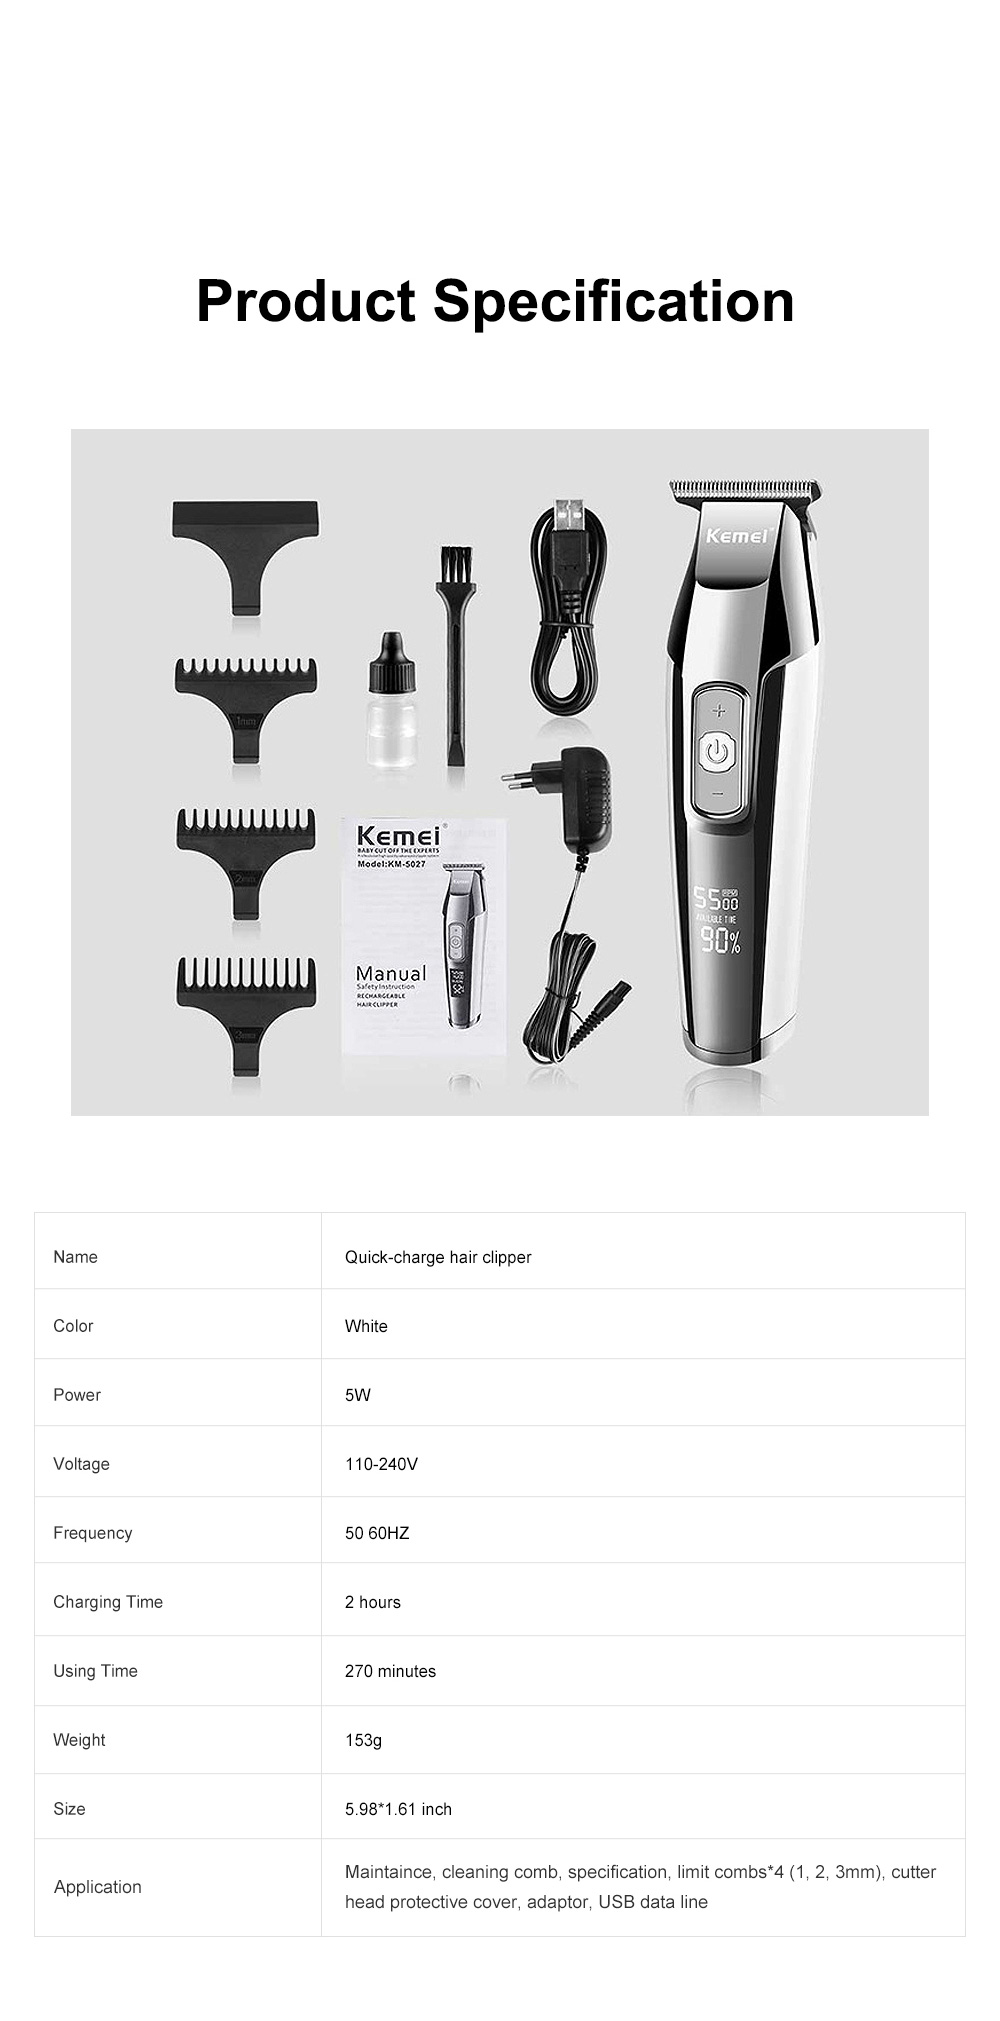 Handy Functional Quick-charge Hair Clipper Graver Braehead Hair Cutting Tool Household Trimming Machine with Liquid Crystal Display Screen 7